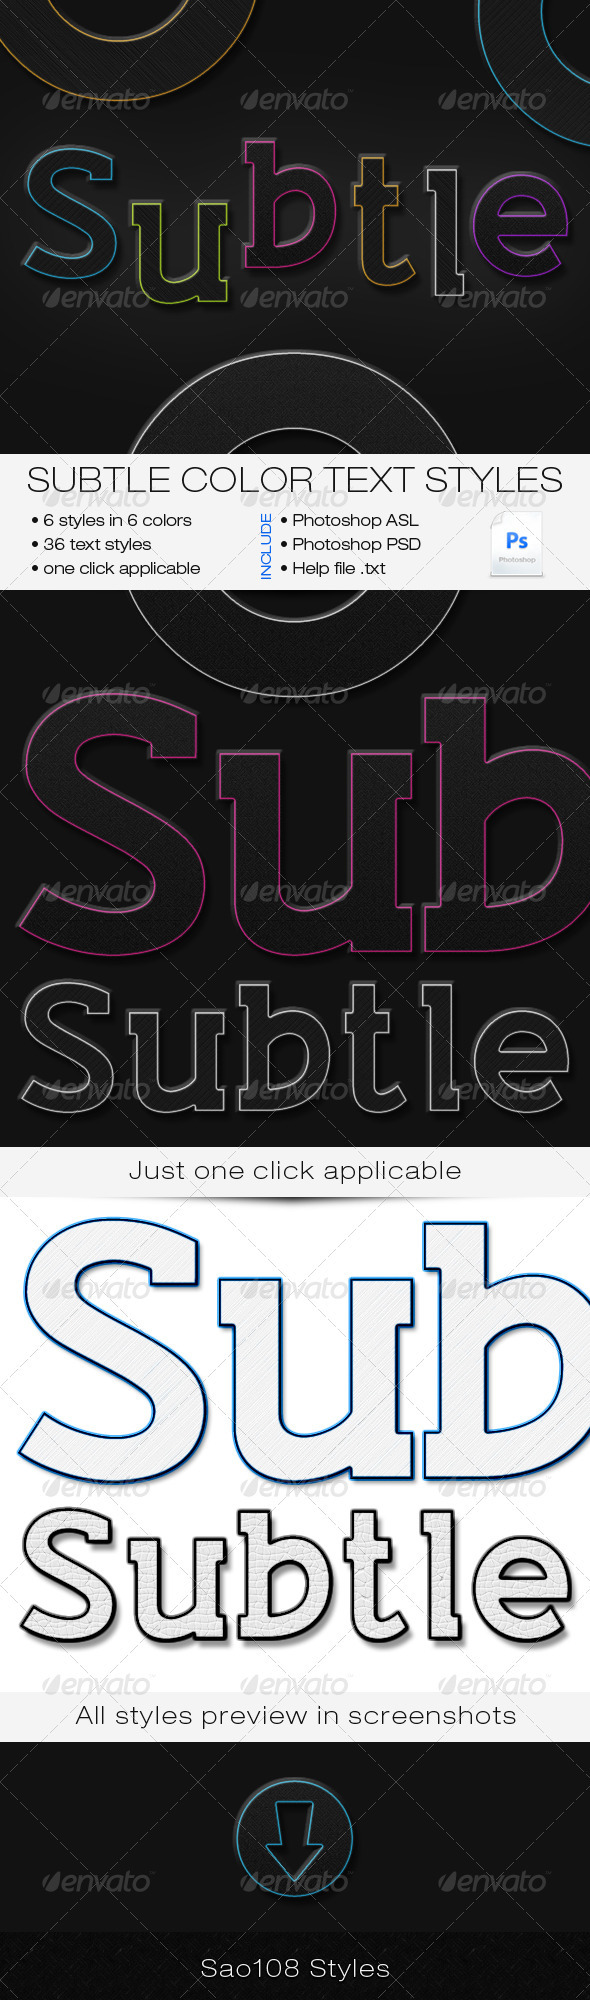 Subtle Color Text Styles - Text Effects Styles